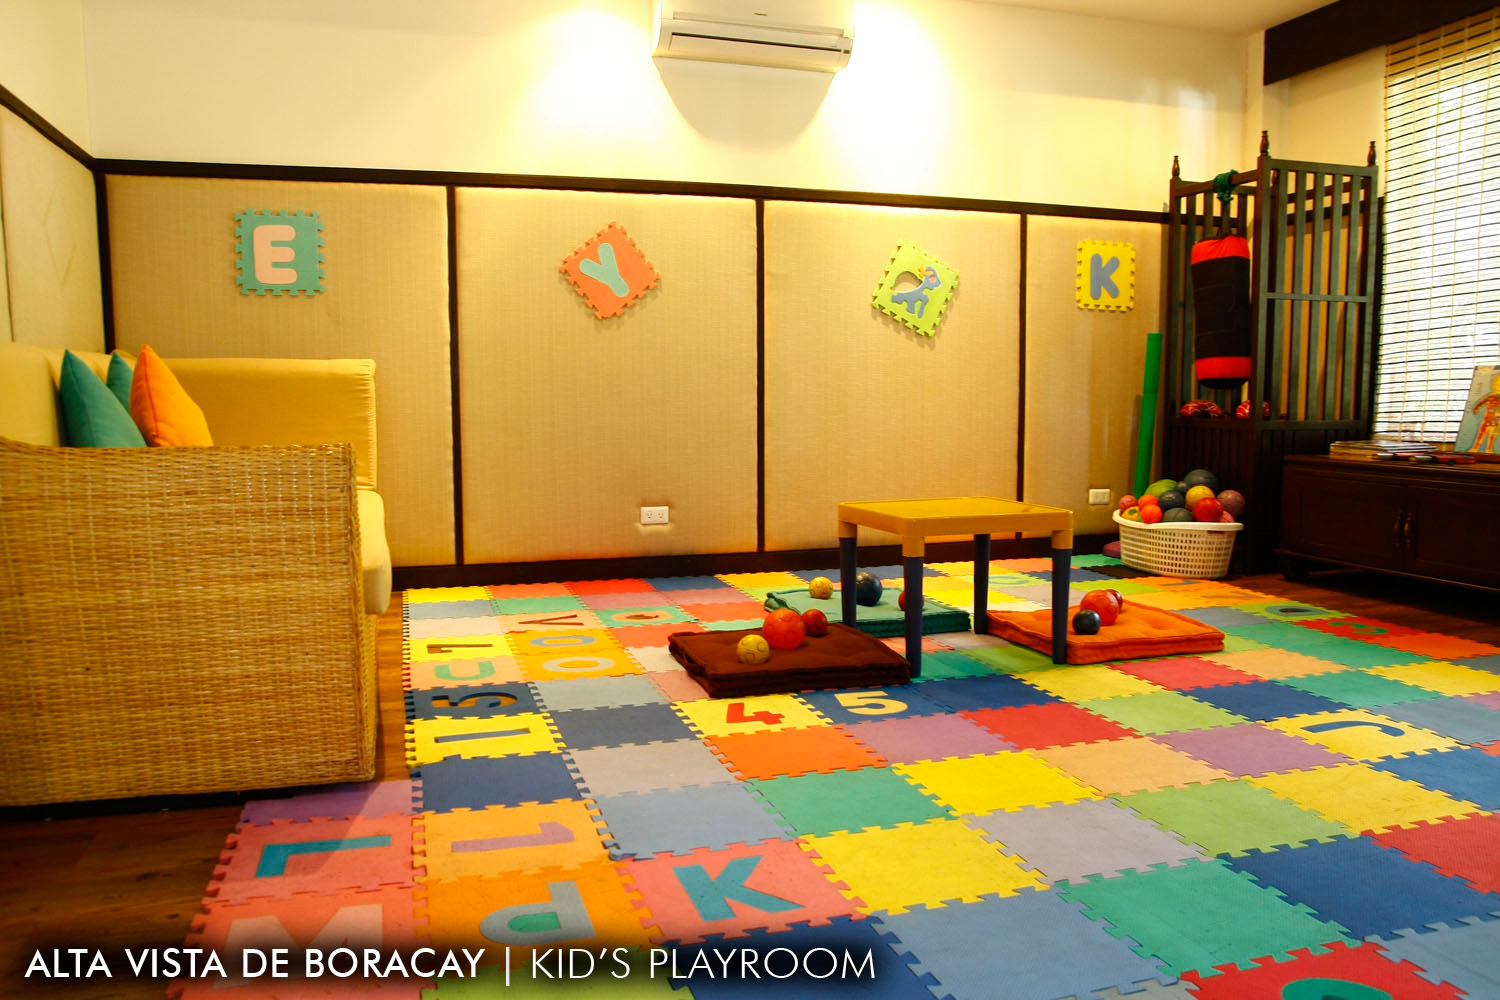 alta-vista-de-boracay-kids-playroom